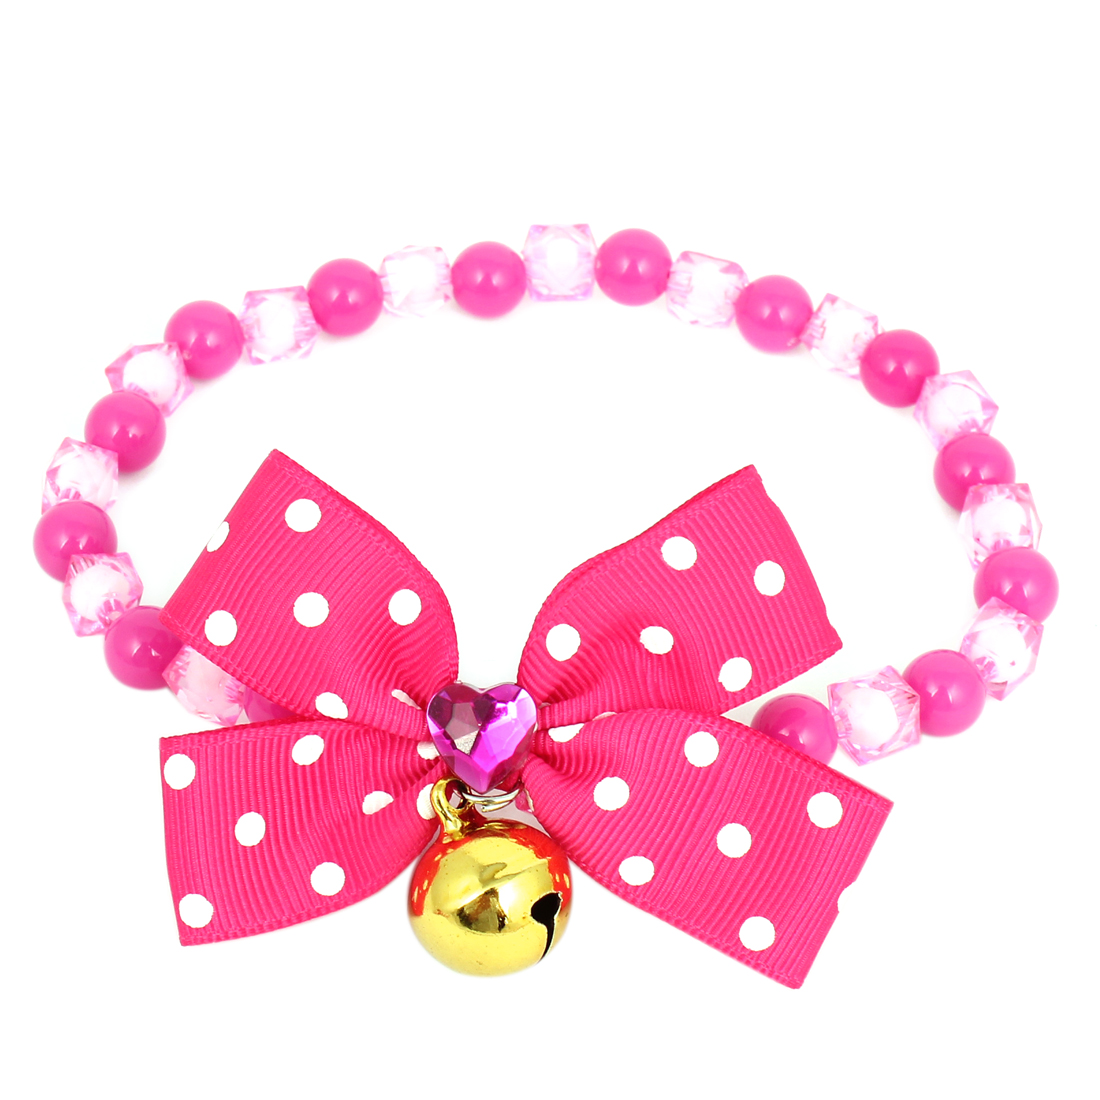 Metal Bell Pendant Bowtie Accent Pet Dog Plastic Beads Collar Necklace Fuchsia M